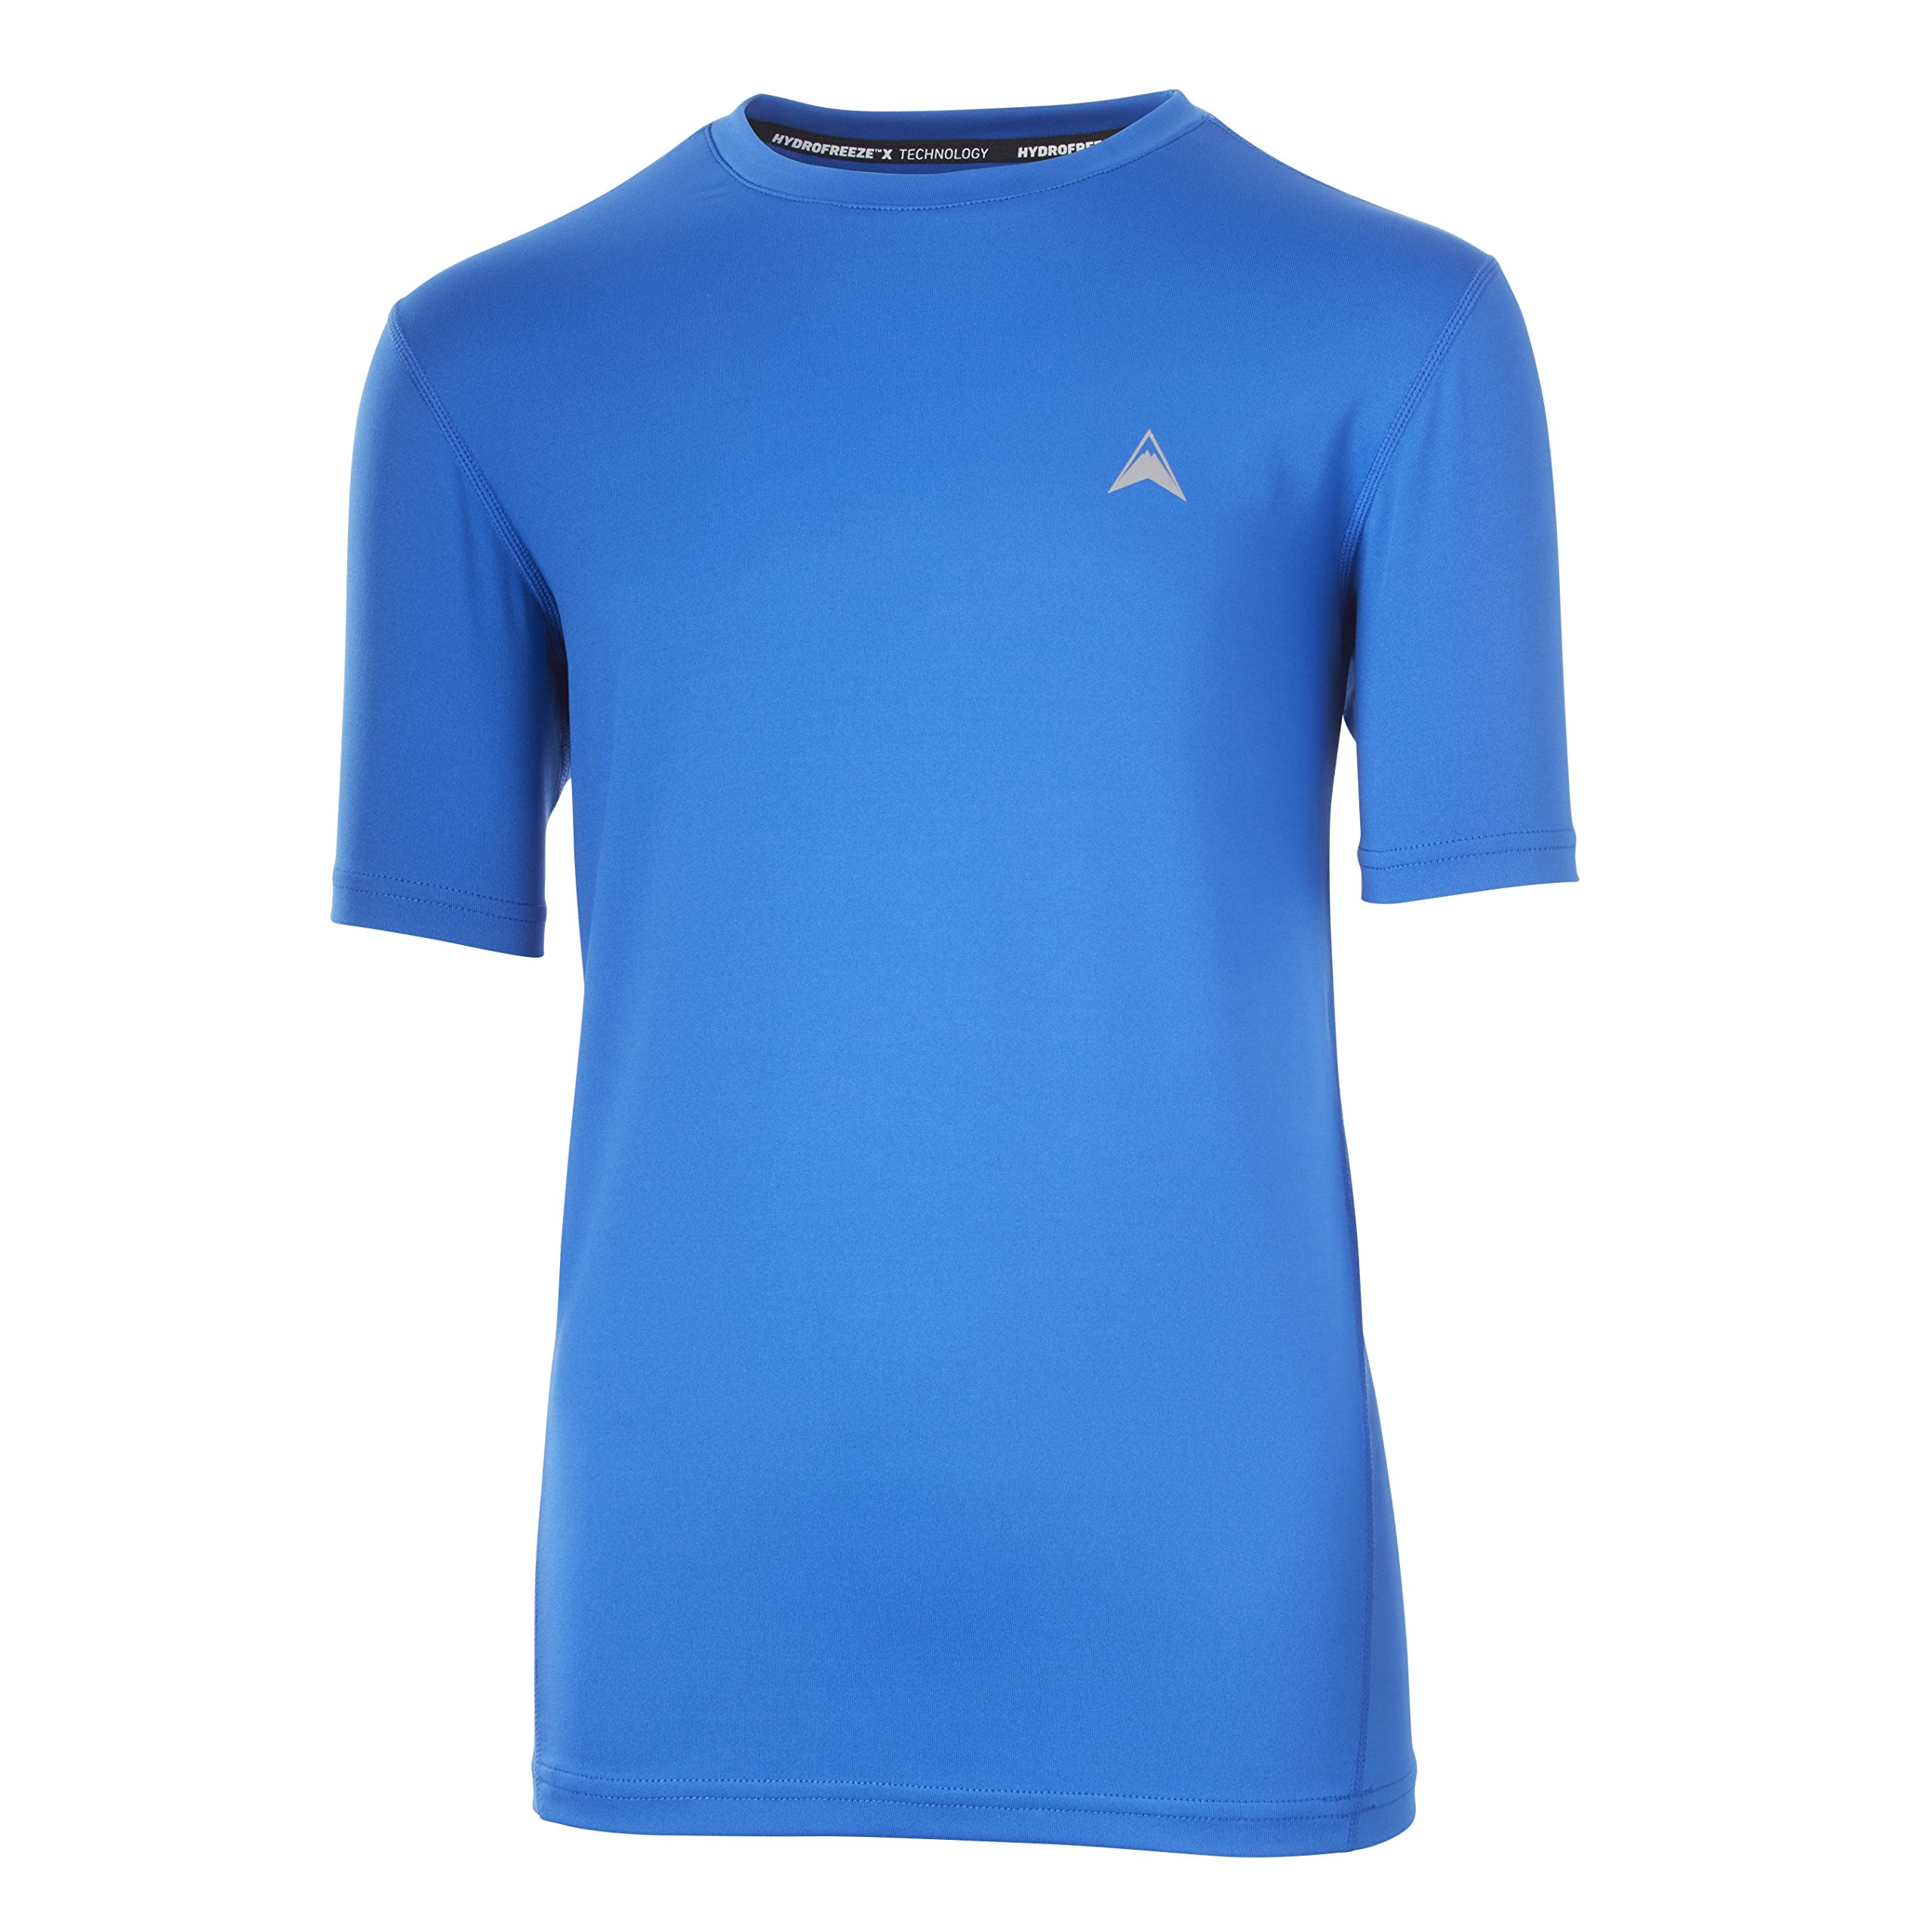 Arctic Cool Boys' Solid Crew Neck Instant Cooling Shirt wth UPF 50+ Sun Protection, Polar Blue, M